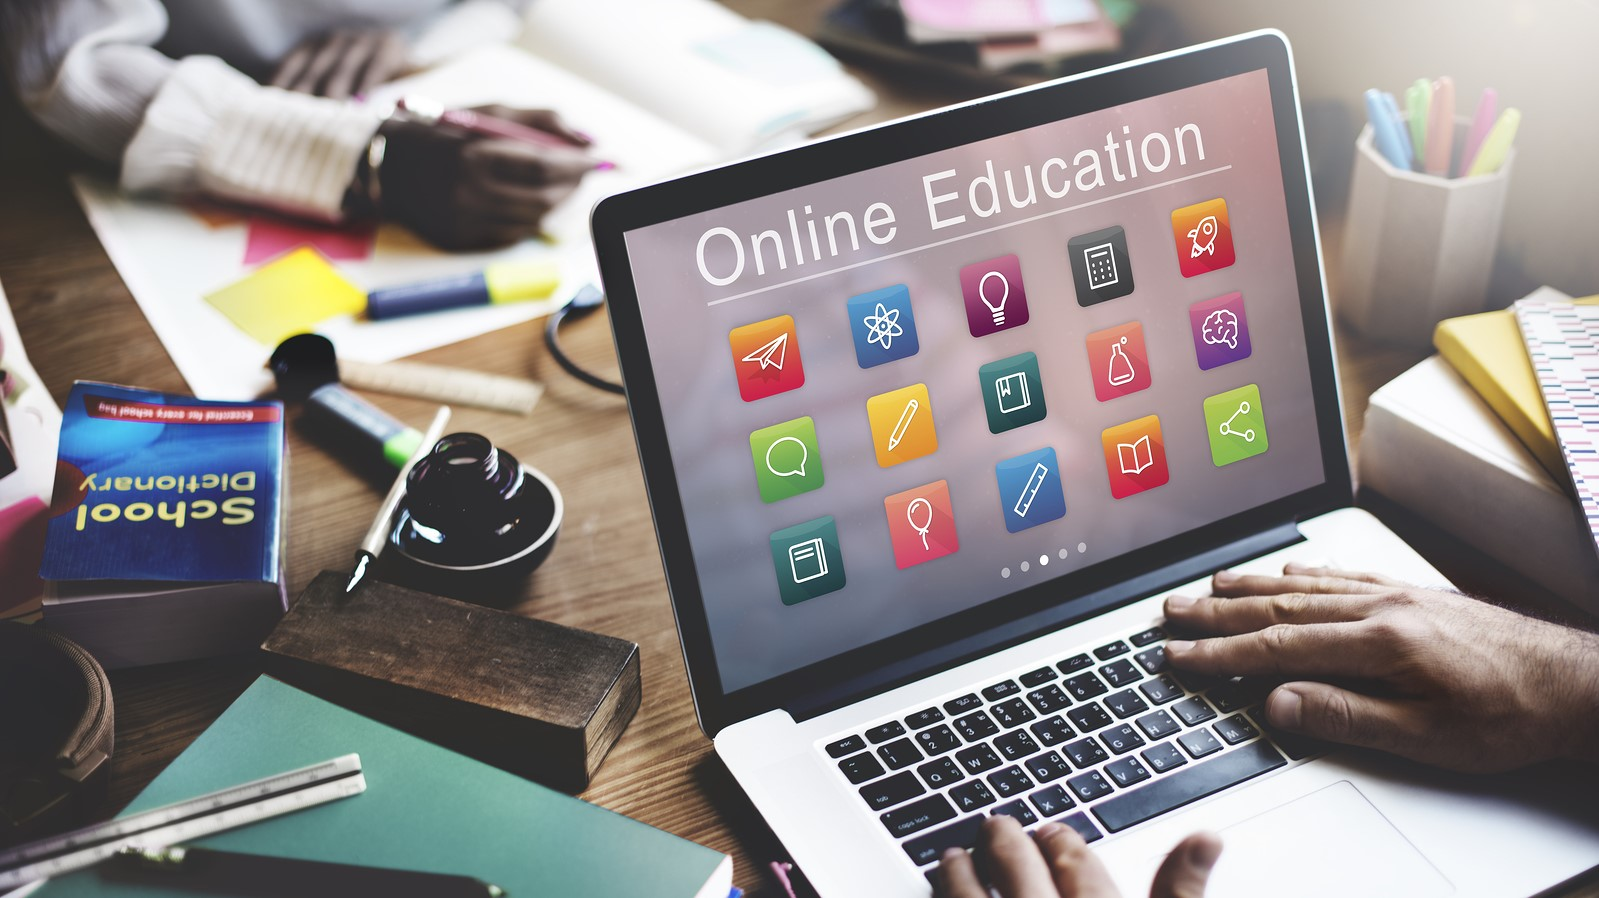 E Learning Online Education Application Concept